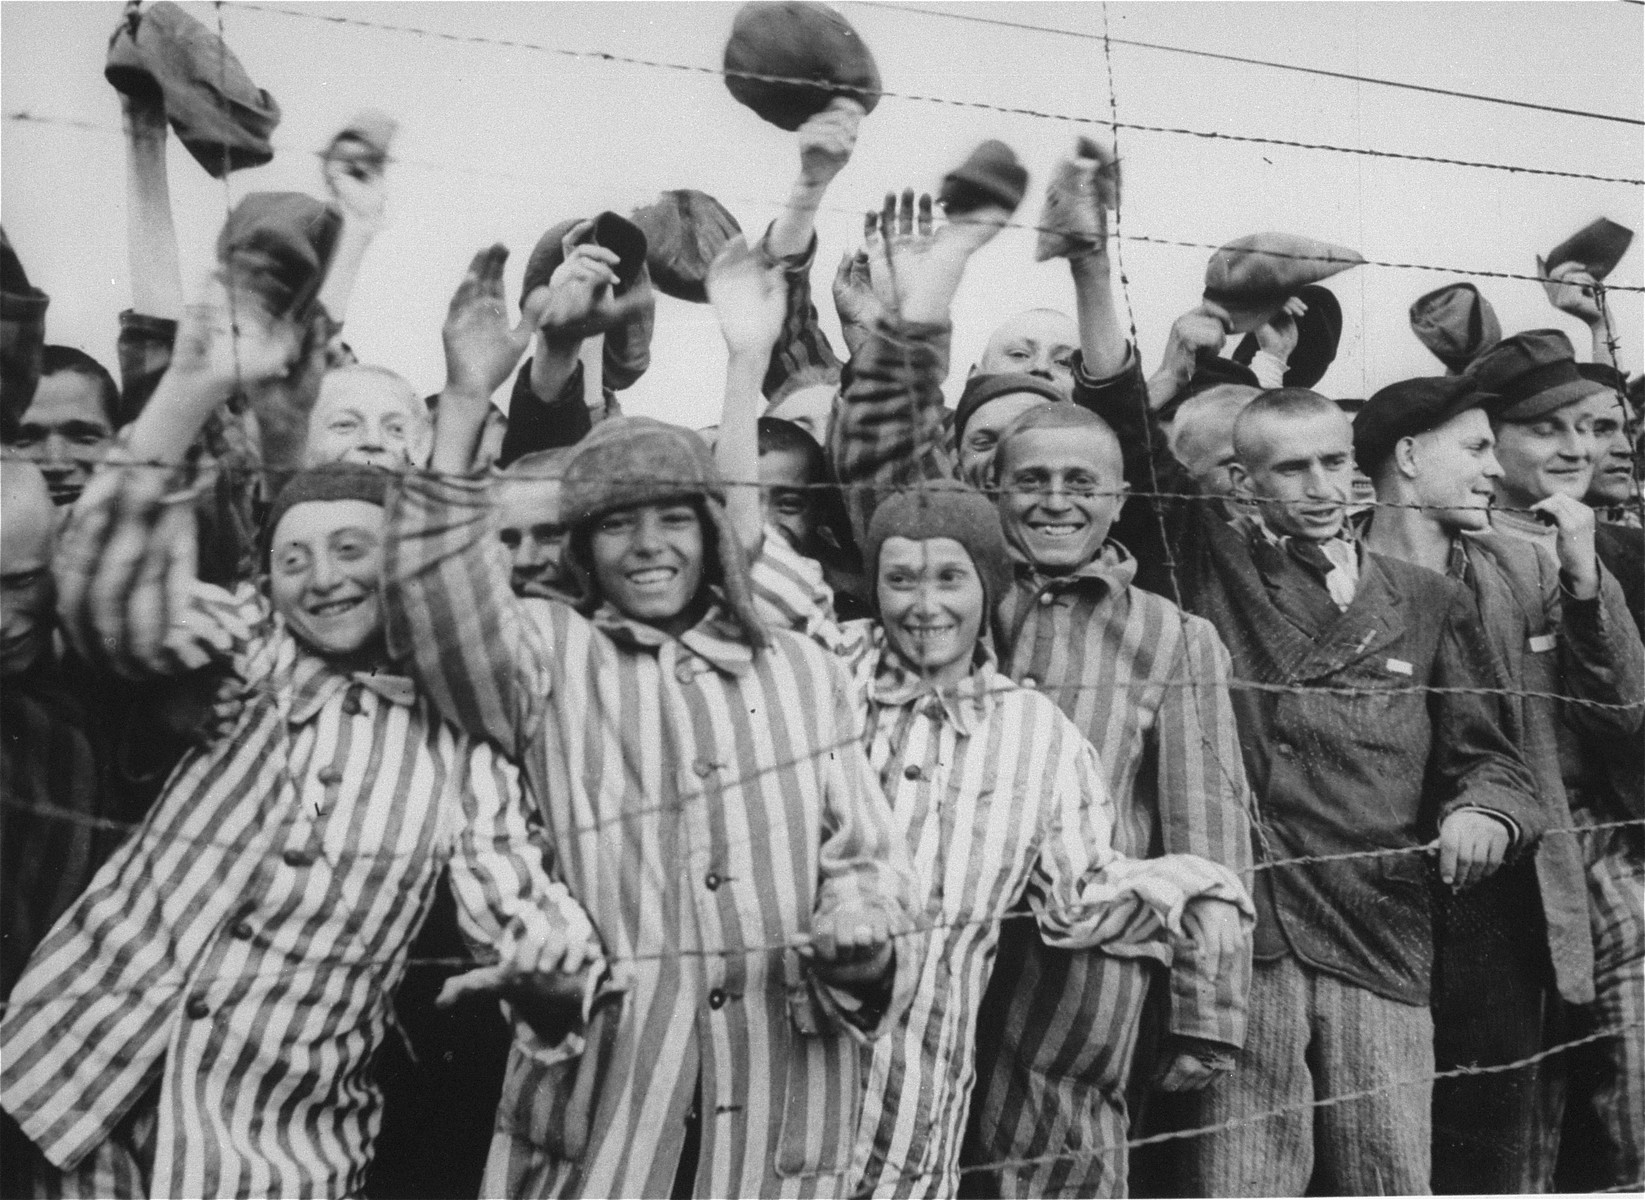 "Survivors cheer the arrival of American liberators.    Among those pictured are Juda Kukieda (middle), to his right is Szmulek Rozental (now Steve Ross),  David Moszkowicz (third from the left) and Gyorgy Laszlo Spiegel (far left).  Original caption reads: ""Dachau Concentration Camp.  Horrors worse than those found in the German concentration camps of Buchenwald and Belsen were discovered in the stinking hell-hole of Dachau, captured by troops of the 42nd and 45th Infantry Divisions of the Seventh U.S. Army April 30, 1945.  More than 32,000 prisoners were liberated, among them some Englishmen, Canadians and Americans.  The camp was formally surrendered by an SS lieutenant carrying a white flag, accompanied by a Swiss Red Cross official, but SS troops opened fire as American troops approached the main entrance.  The Germans were shot down.  Three prisoners were electrocuted when they tried to burst through the electrified wire barrier to welcome the Americans.  SS guards opened fire on other prisoners who went wild with joy and rushed to meet the liberating troops.  Prisoners with access to records said 9,000 people died of hunger, disease or shooting within the past three months at Dachau.  Four thousand more perished during cold Winter months.  When Americans entered the camp, they found 50 open railway cars standing on a siding, apparently full of dirty clothing but actually found to contain hundreds of corpses piled on top of each other.  They also found a row of kennels where fierce dogs were kept to set after escaping men.  They discovered gas extermination chambers, incinerators full of naked bodies, bodies marked for dissection and the bodies of several small children.    This photo shows: Former prisoners of the Nazis, some wearing the characteristic striped dress of the concentration camp, wildly cheer troops of the Seventh U.S. Army following their liberation from the horrors of Dachau."""